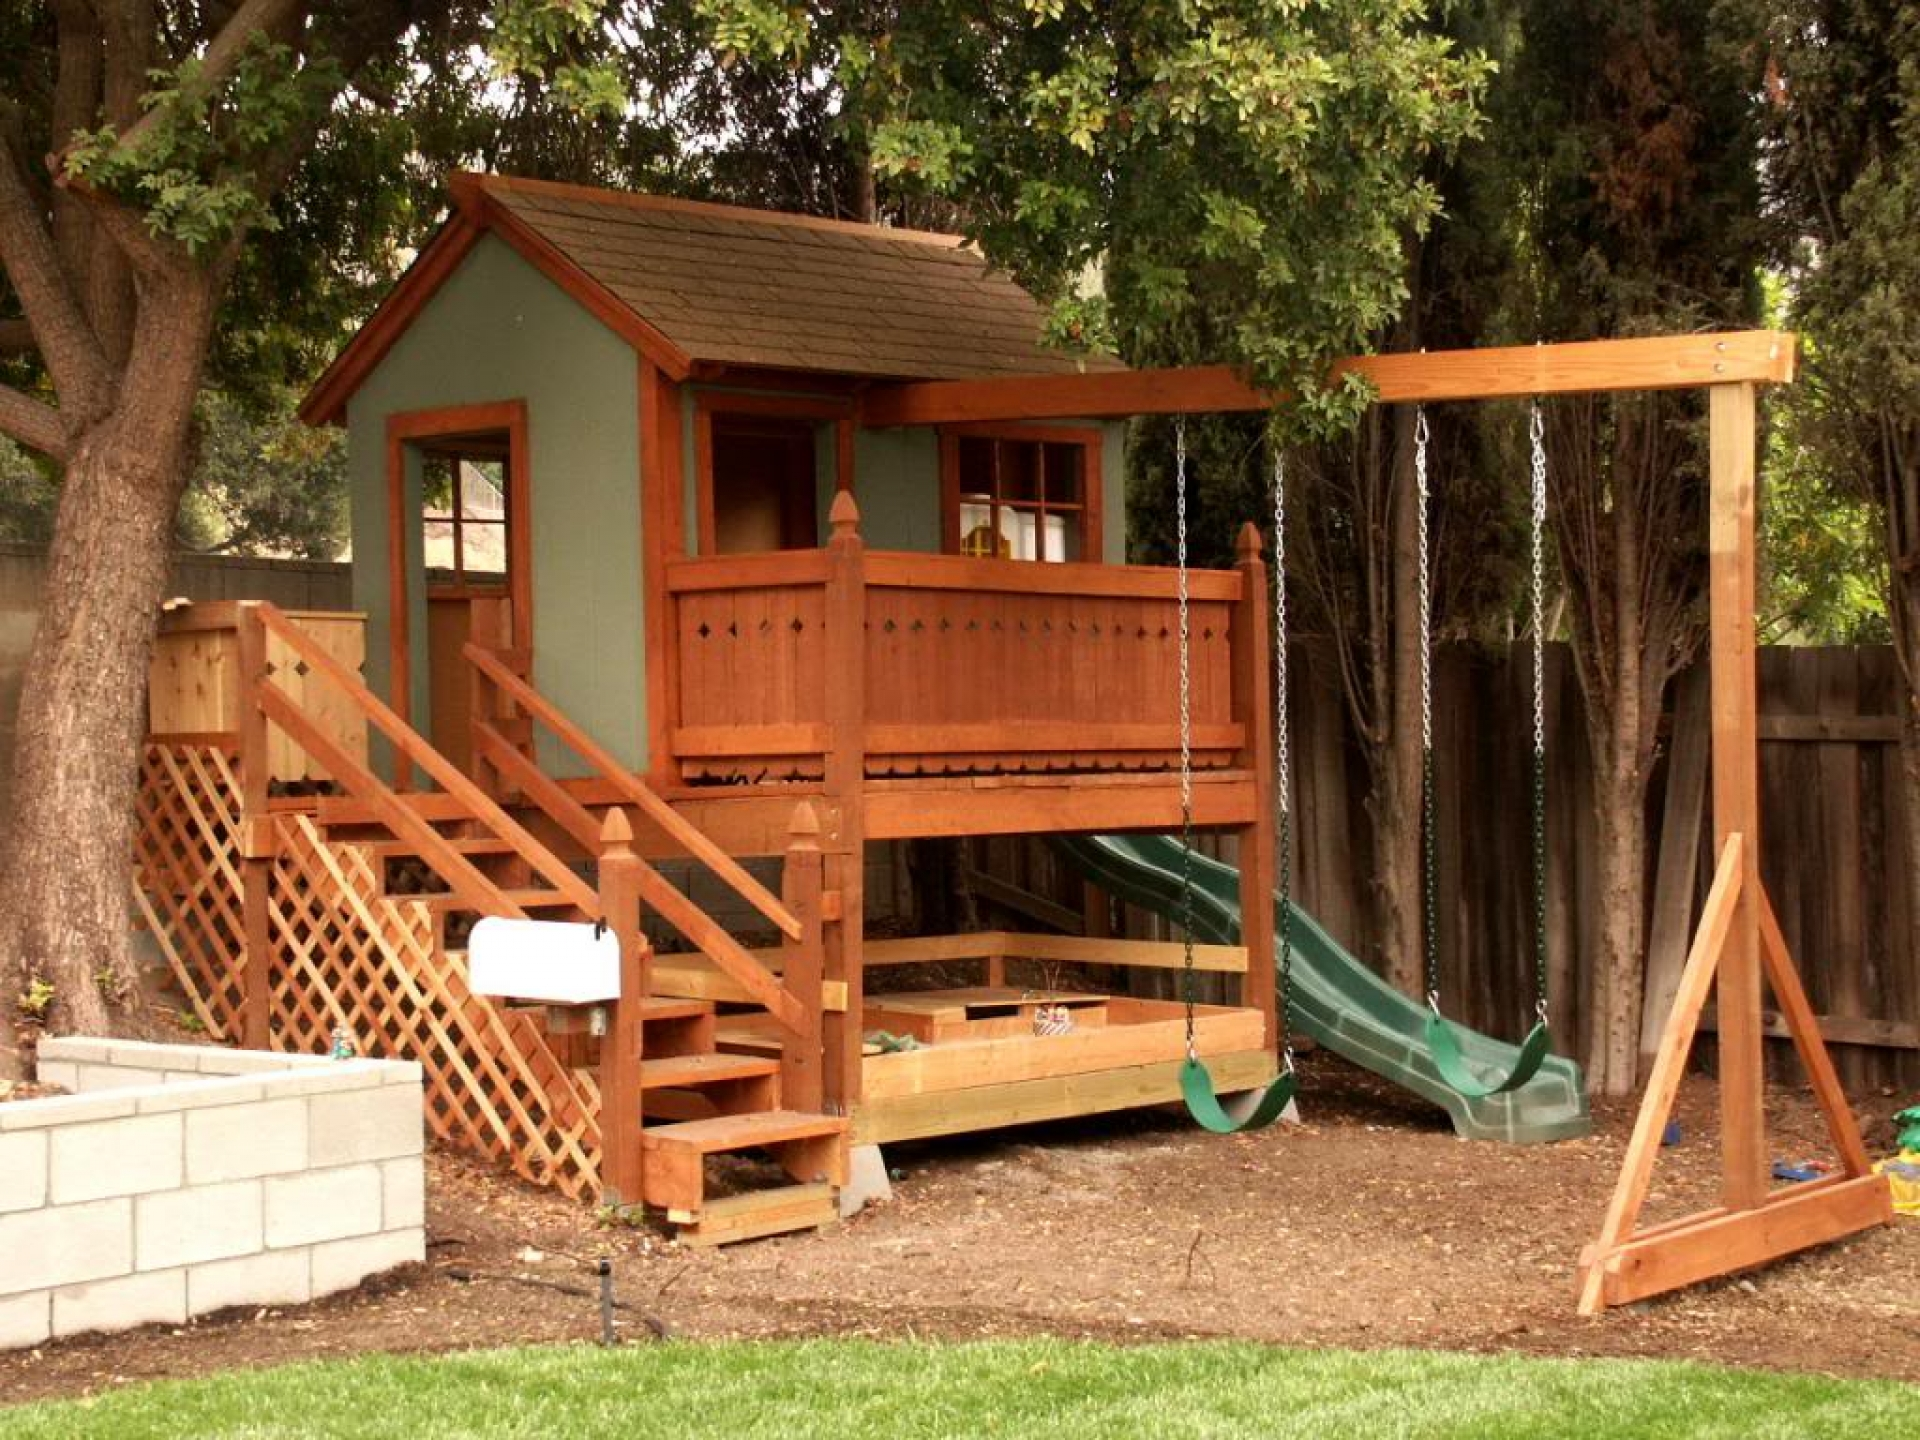 Playhouse Designs And Ideas – ICMT SET : Playhouse Designs ... on outdoor garage designs, outdoor house designs, outdoor patio designs, outdoor fireplaces designs, outdoor playground designs, playhouse printable designs, cool playhouse designs, outdoor shed designs, outdoor playset designs, wood playhouse designs, outdoor garden designs, outdoor shopping designs, outdoor arena designs, outdoor pool designs, outdoor furniture designs, indoor playhouse designs, outdoor cottage designs, outdoor studio designs, playhouse plans and designs, outdoor office designs,